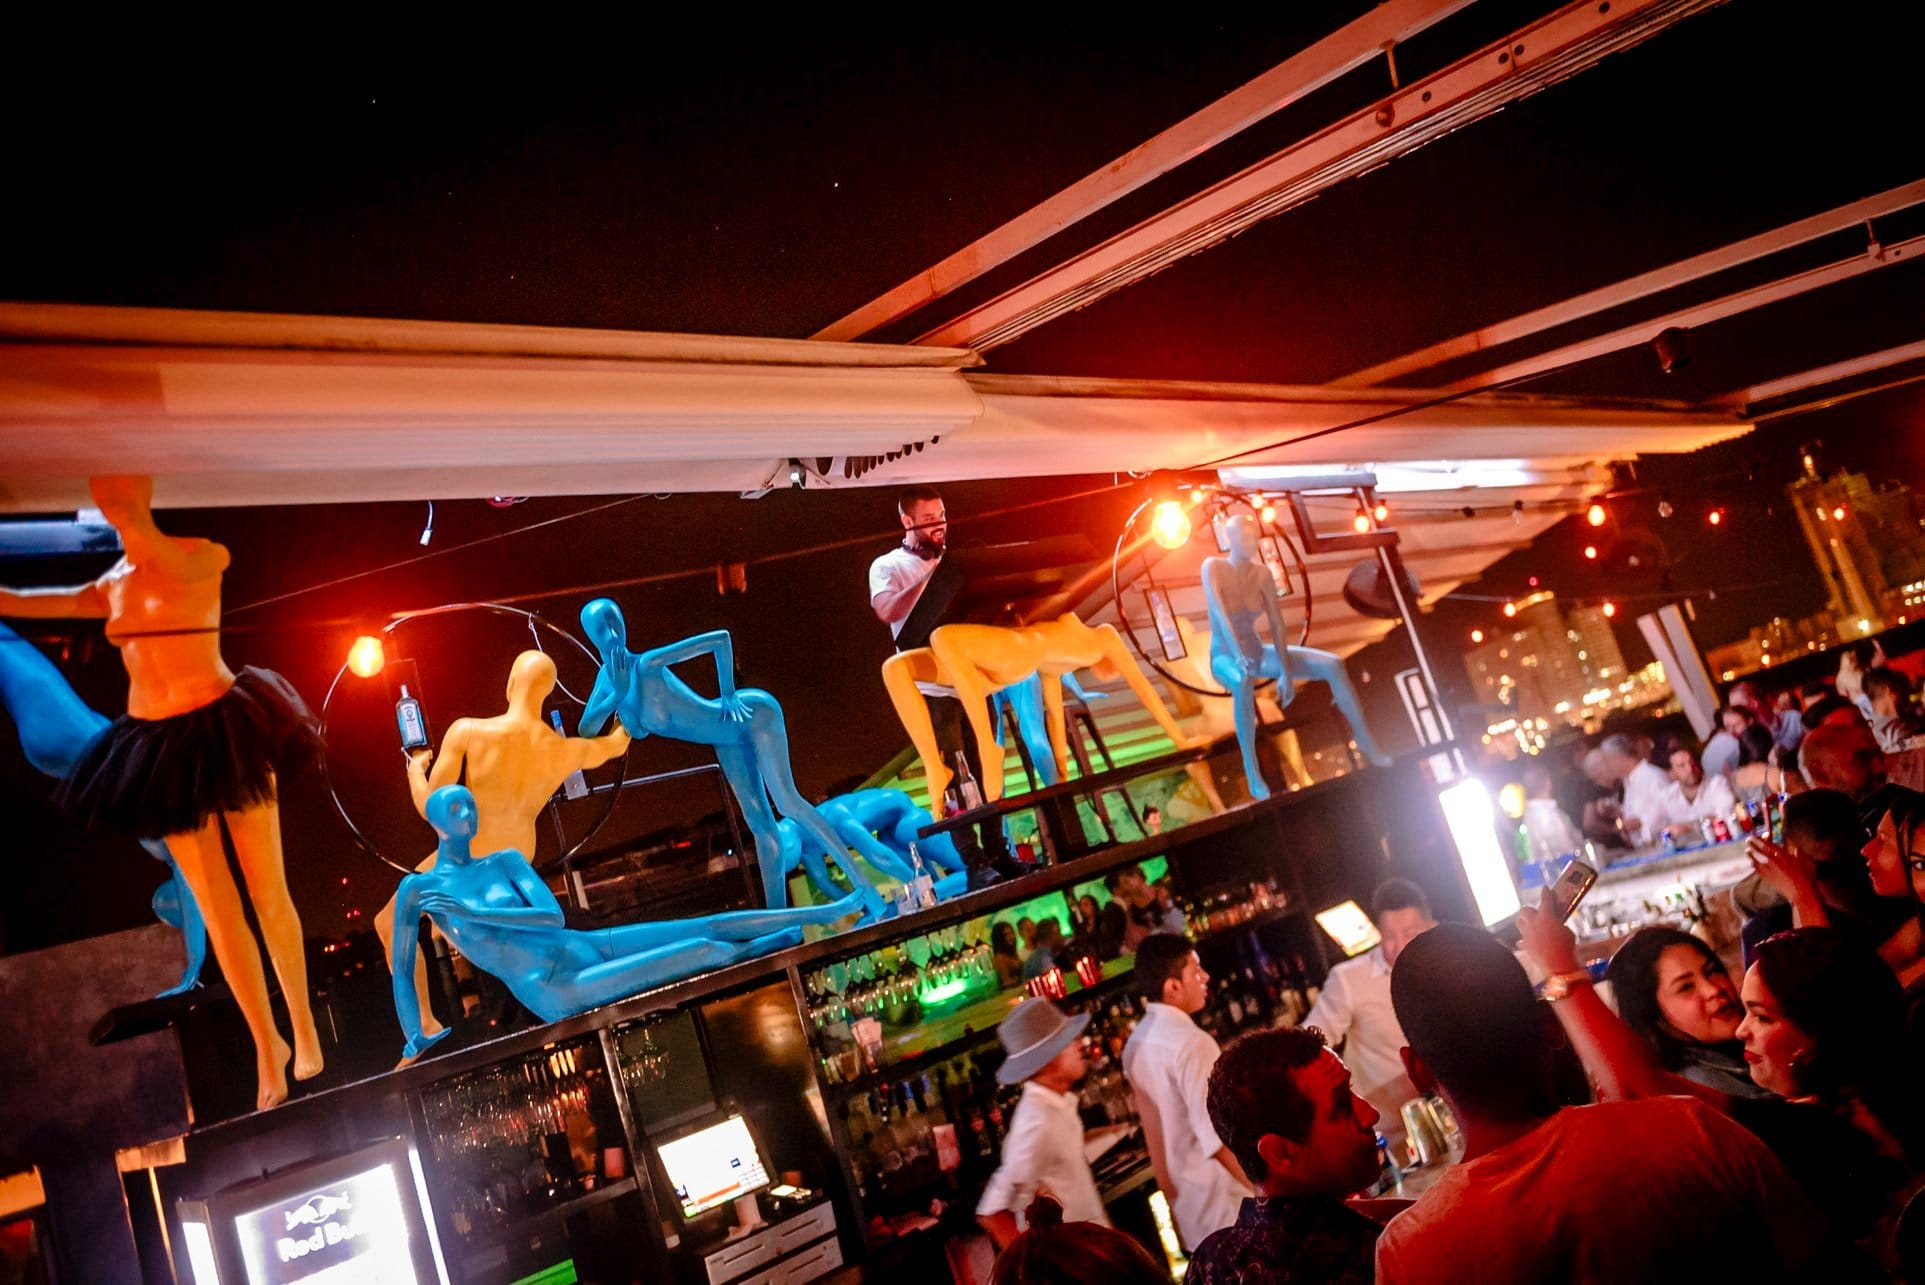 Tantalo Rooftop Bar has eccentric decoration